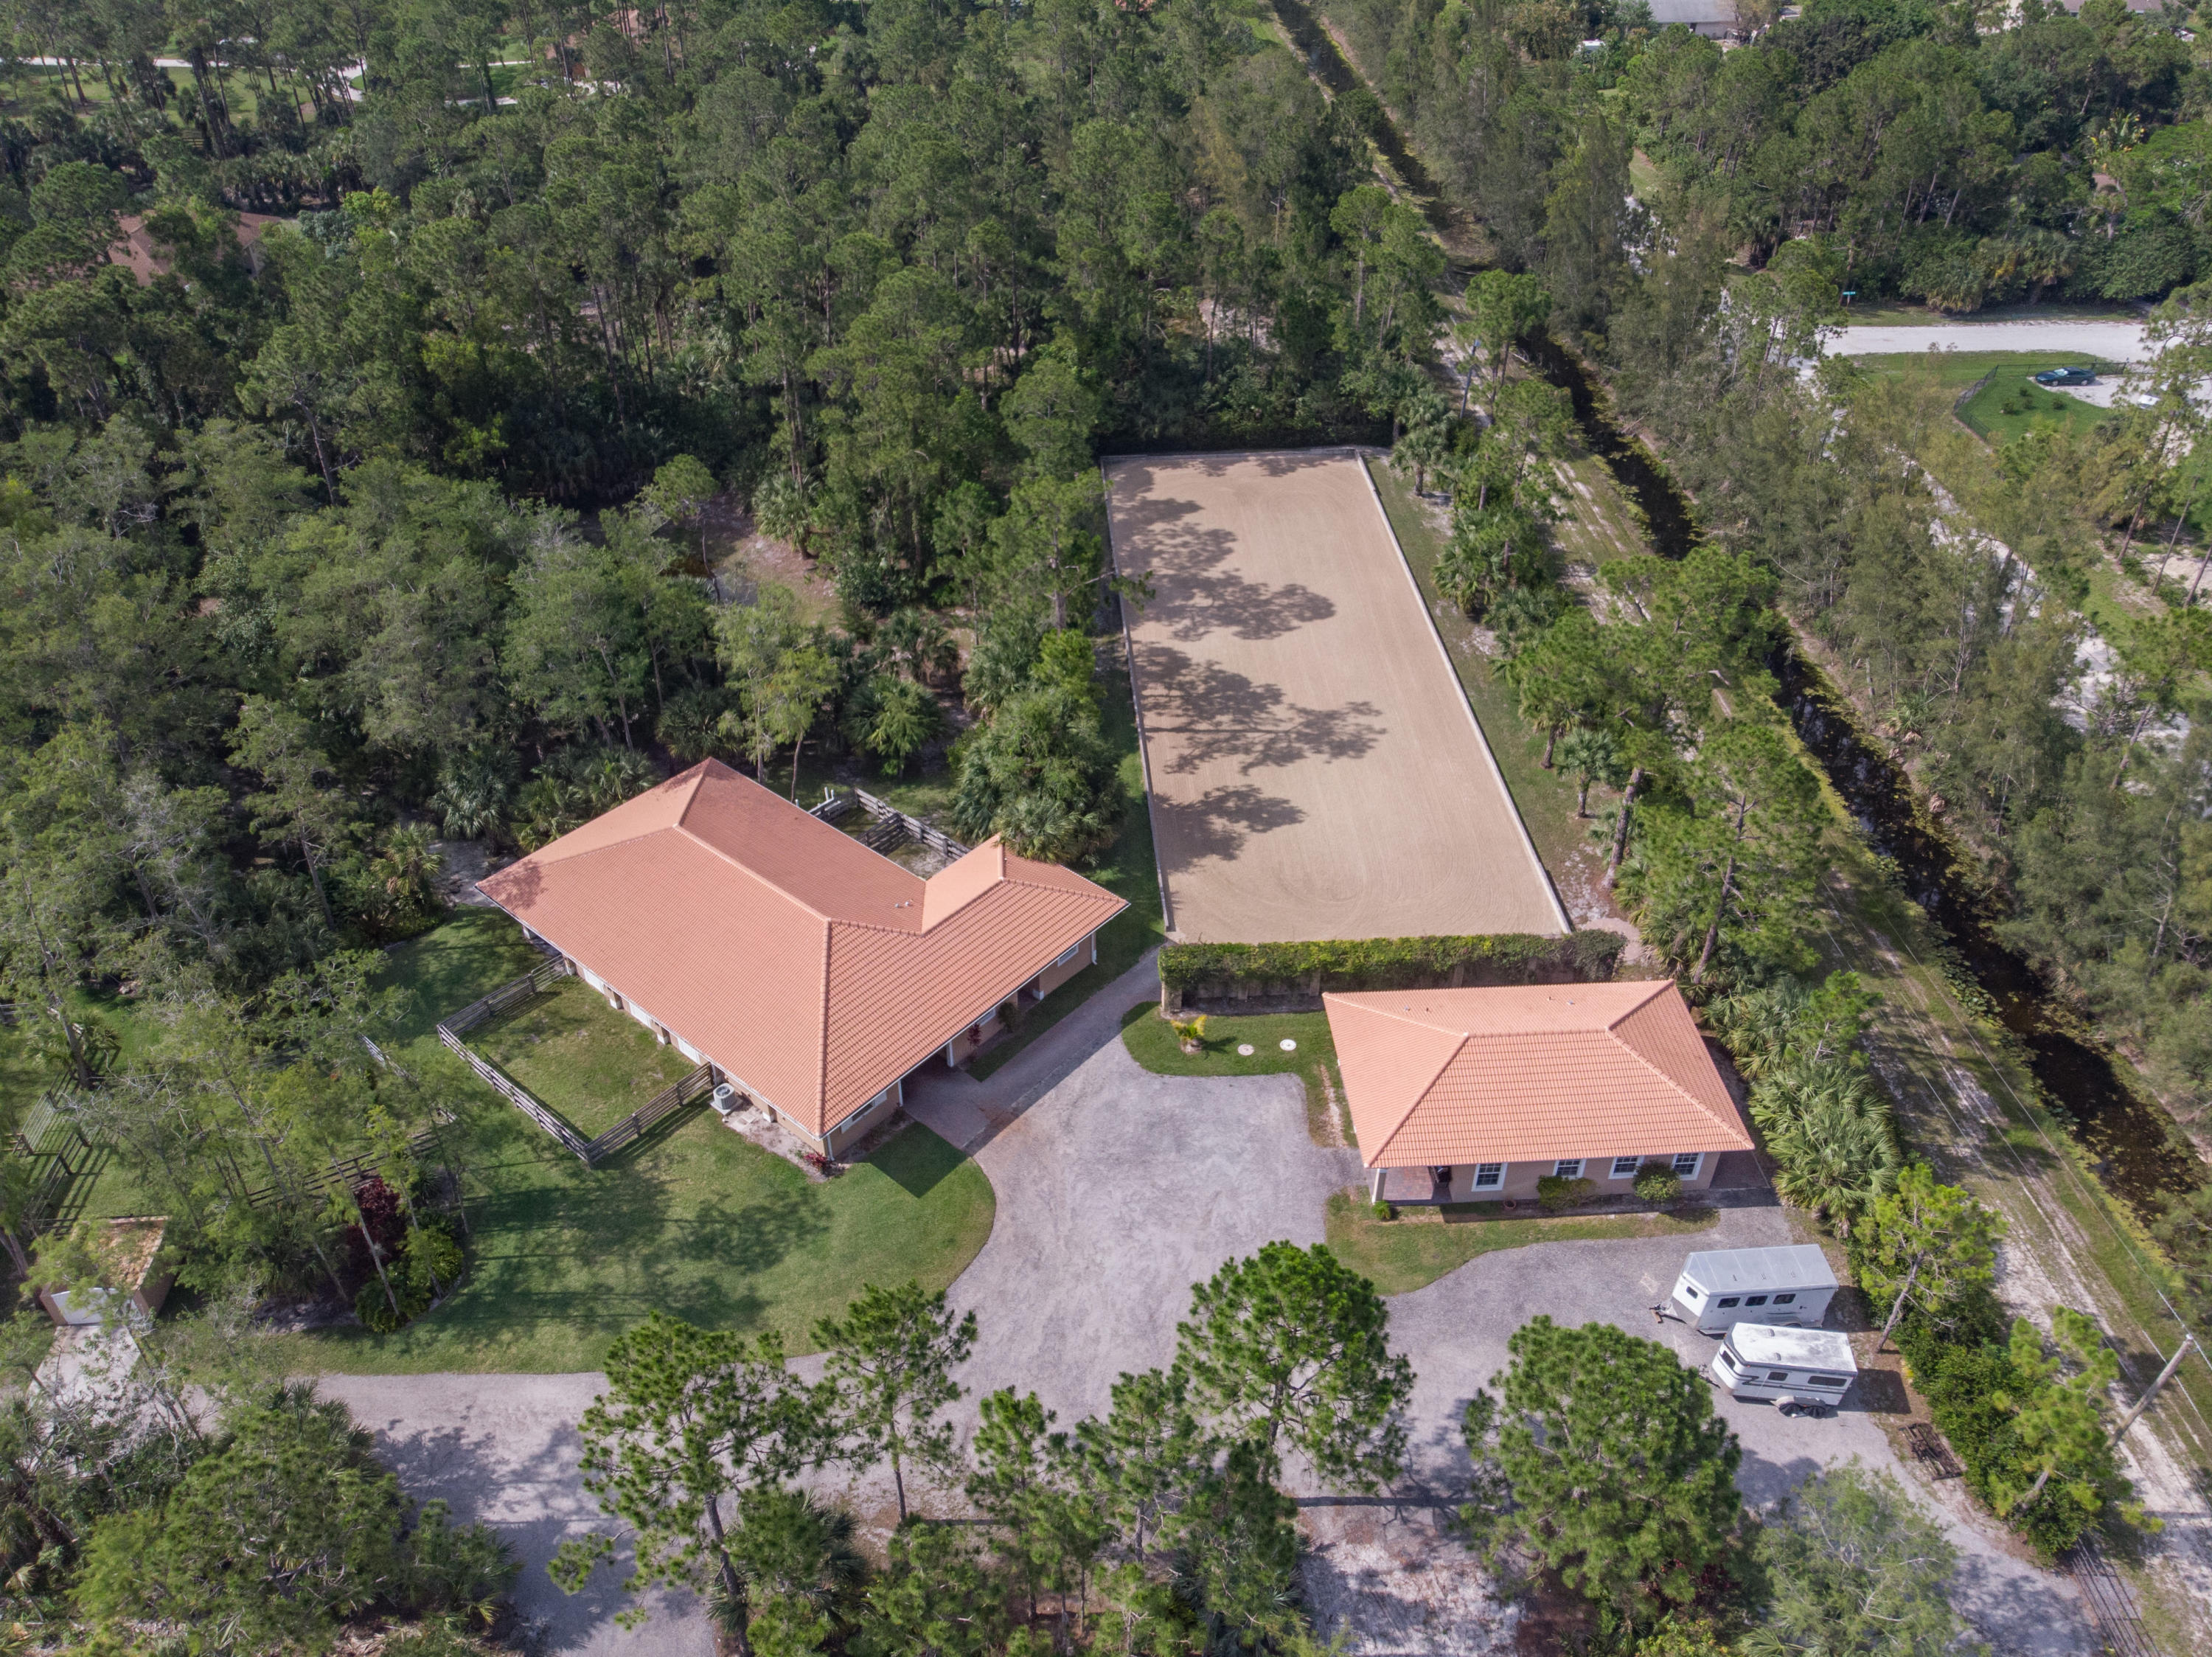 1154 Clydesdale Drive, Loxahatchee, Florida 33470, 2 Bedrooms Bedrooms, ,2.1 BathroomsBathrooms,Barn,For Rent,Clydesdale,RX-10576444